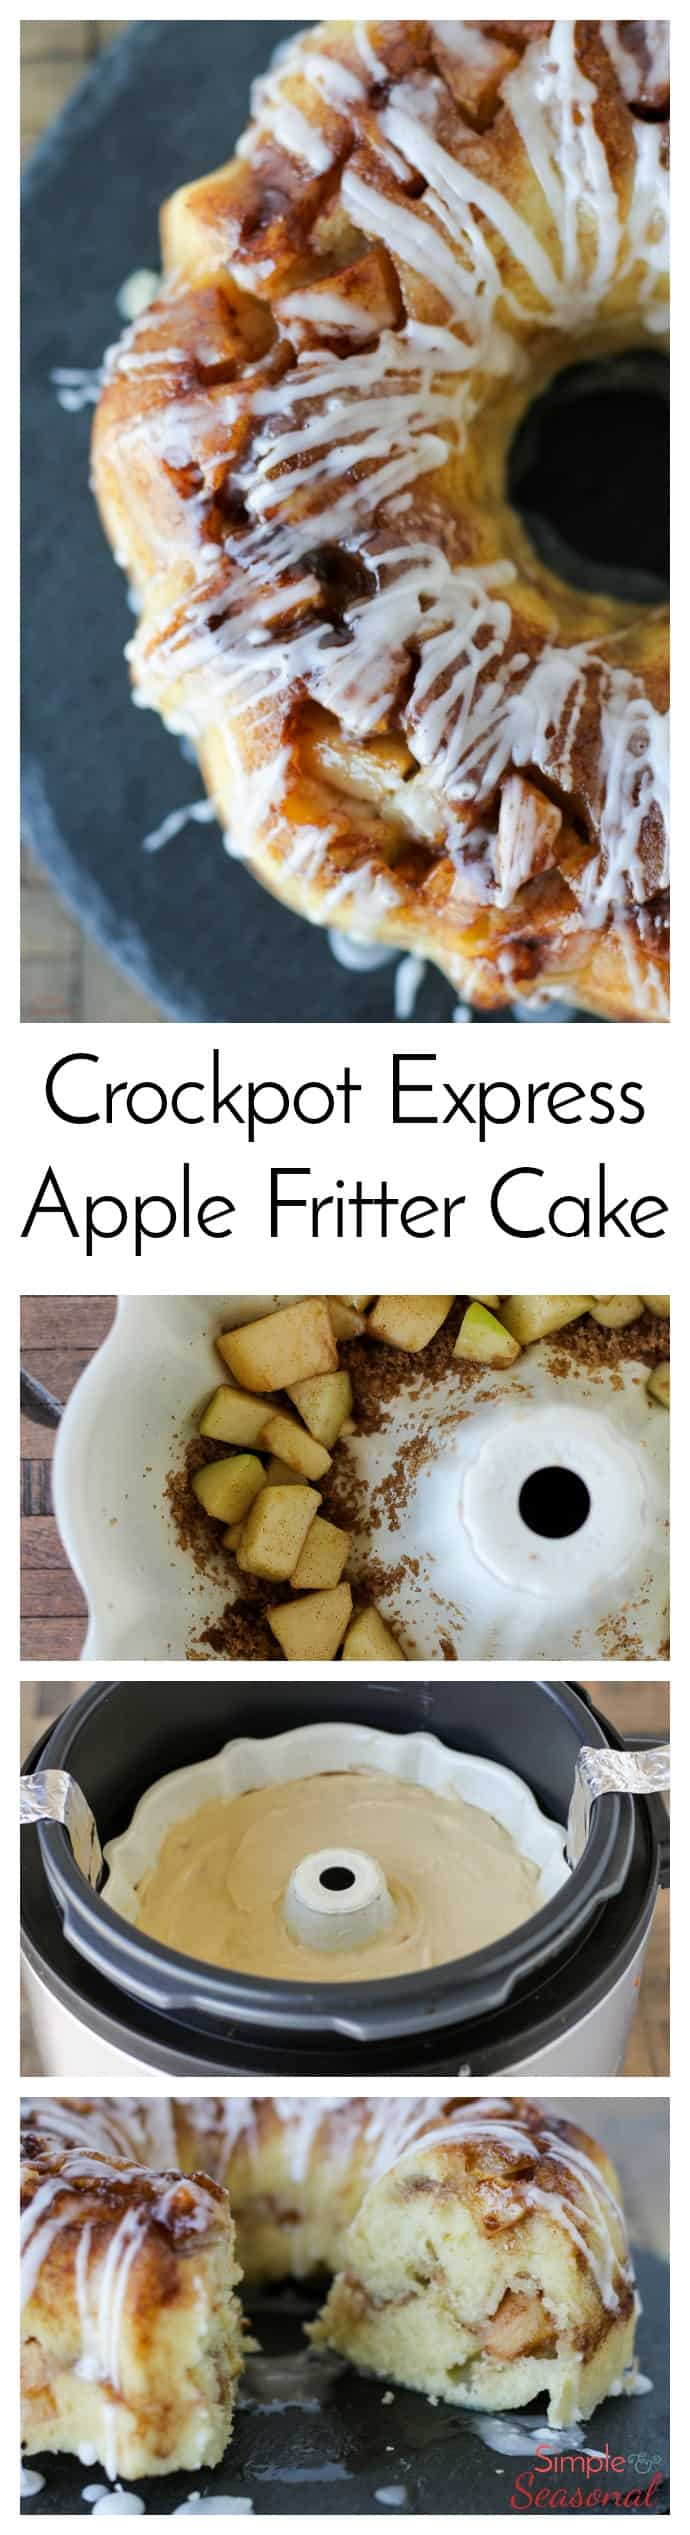 Chunks of tart apples, a sweet glaze and a brown sugar crackle on top make this Crockpot Express Apple Fritter Cake a delicious dessert that's ready in less than an hour (without heating up the kitchen!) #CPE #CrockpotExpress #PressureCooking #Dessert via @nmburk